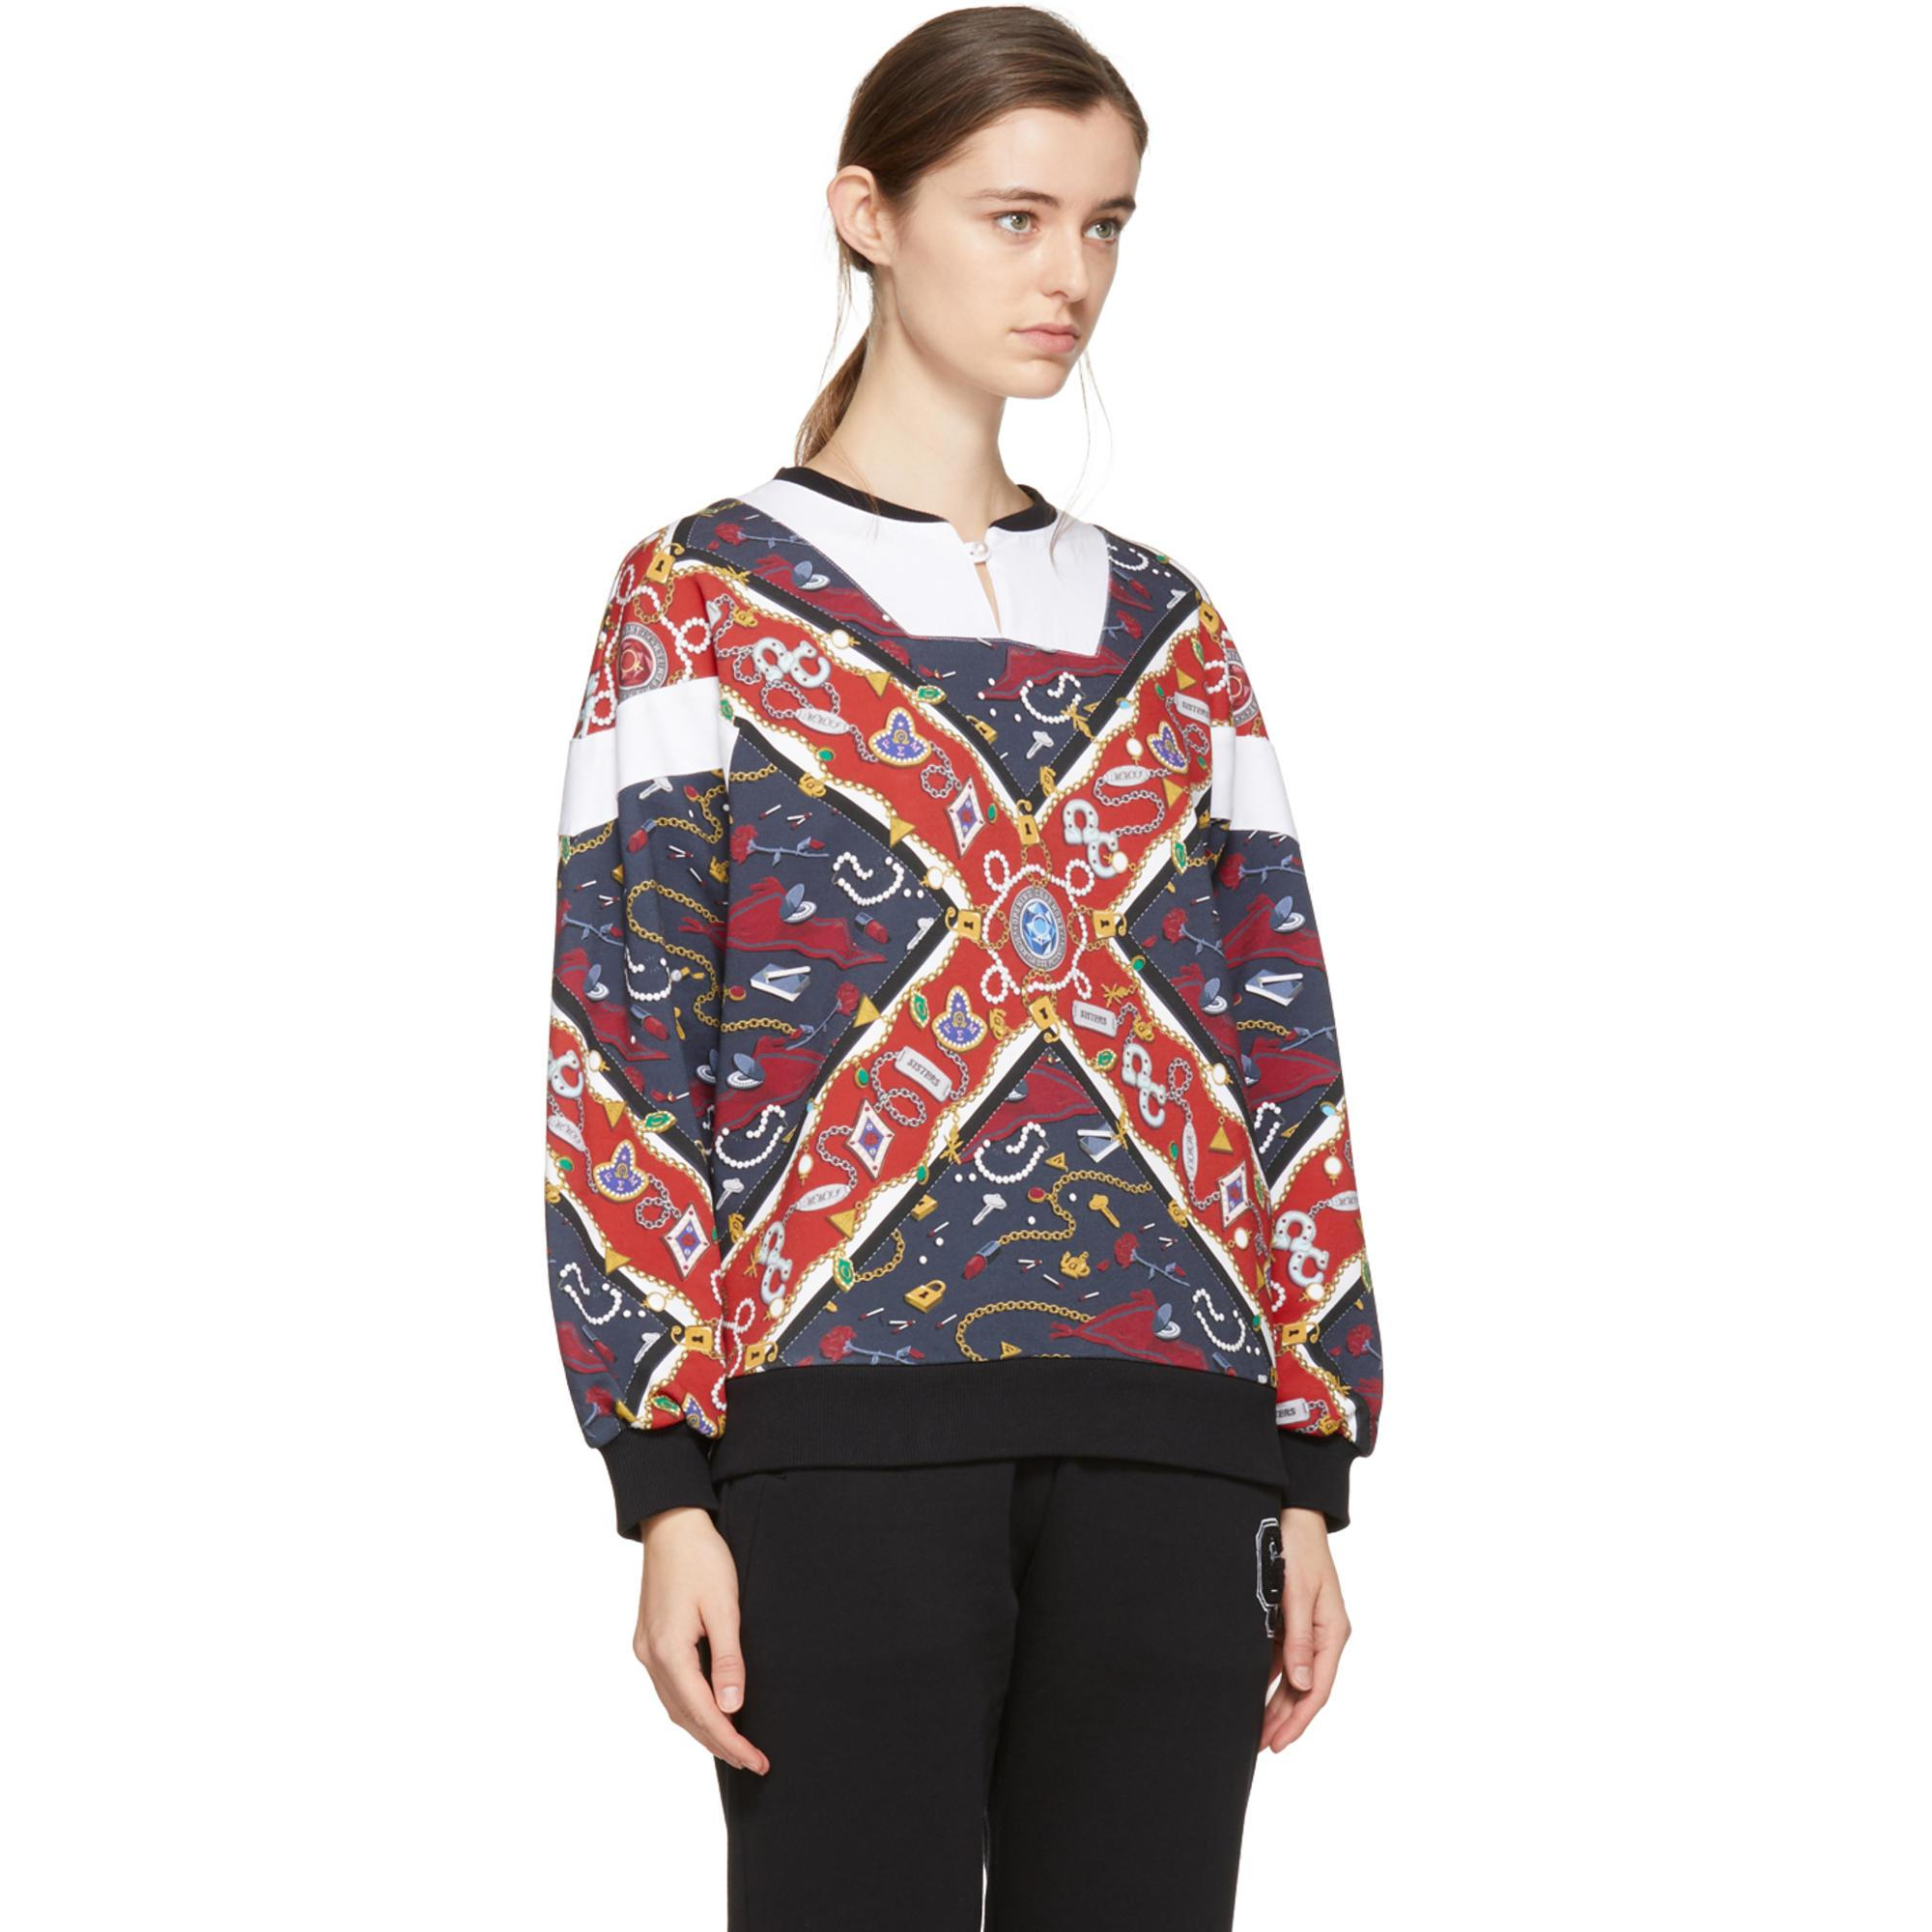 Reversible Multicolor Sorority Scarf Sweatshirt Opening Ceremony With Mastercard Cheap Online TwnGLKCJ